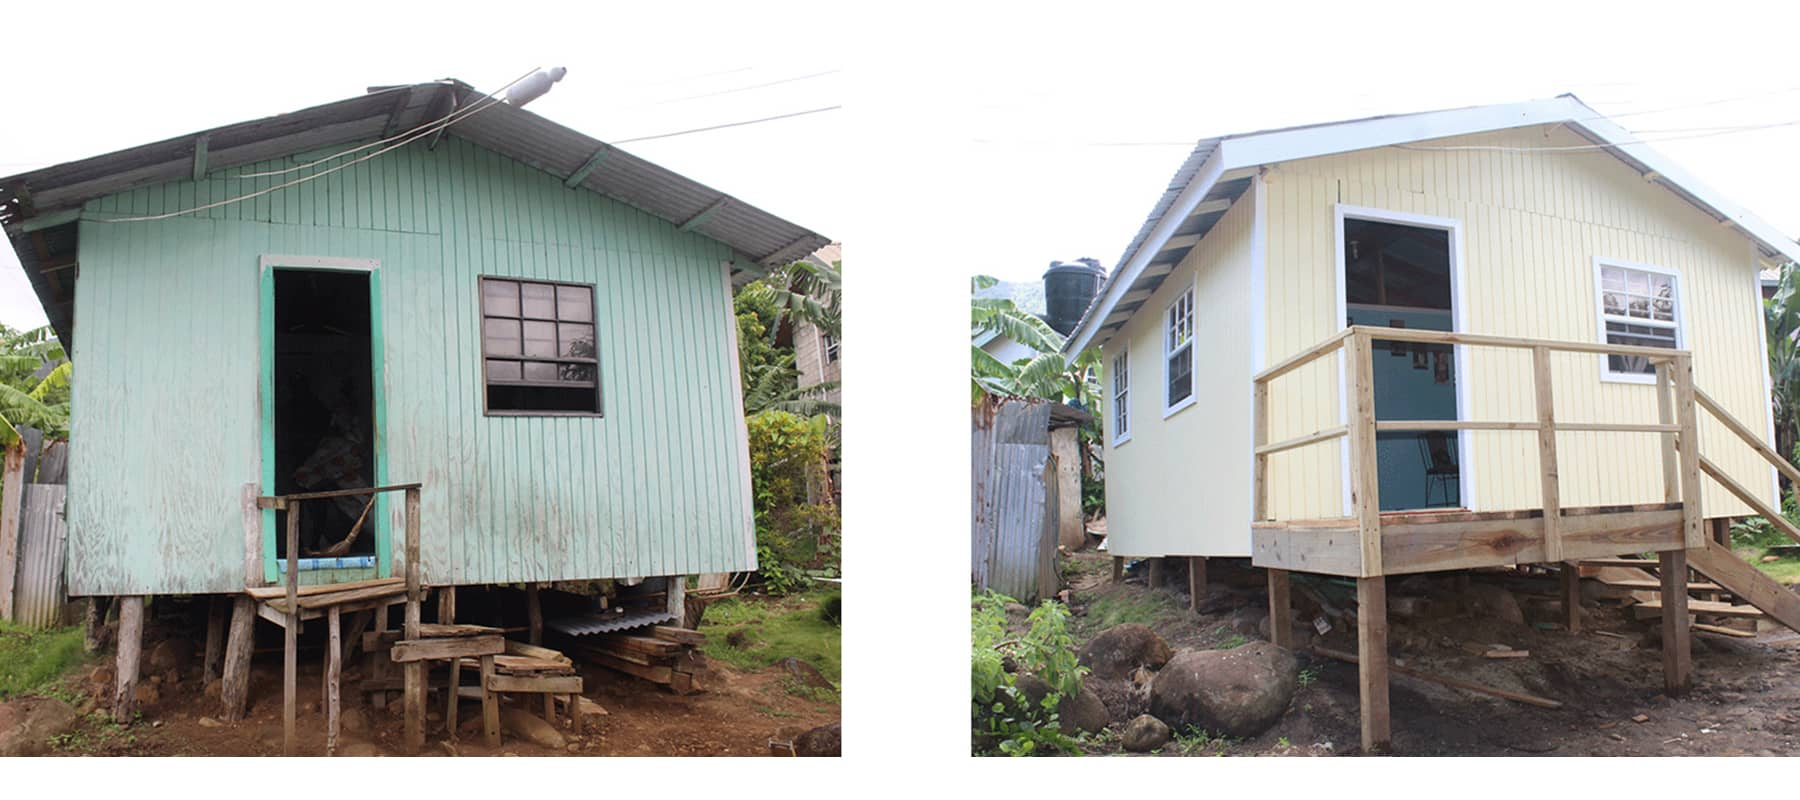 Vision Express Renovates Home For Elderly Fond Assau Man